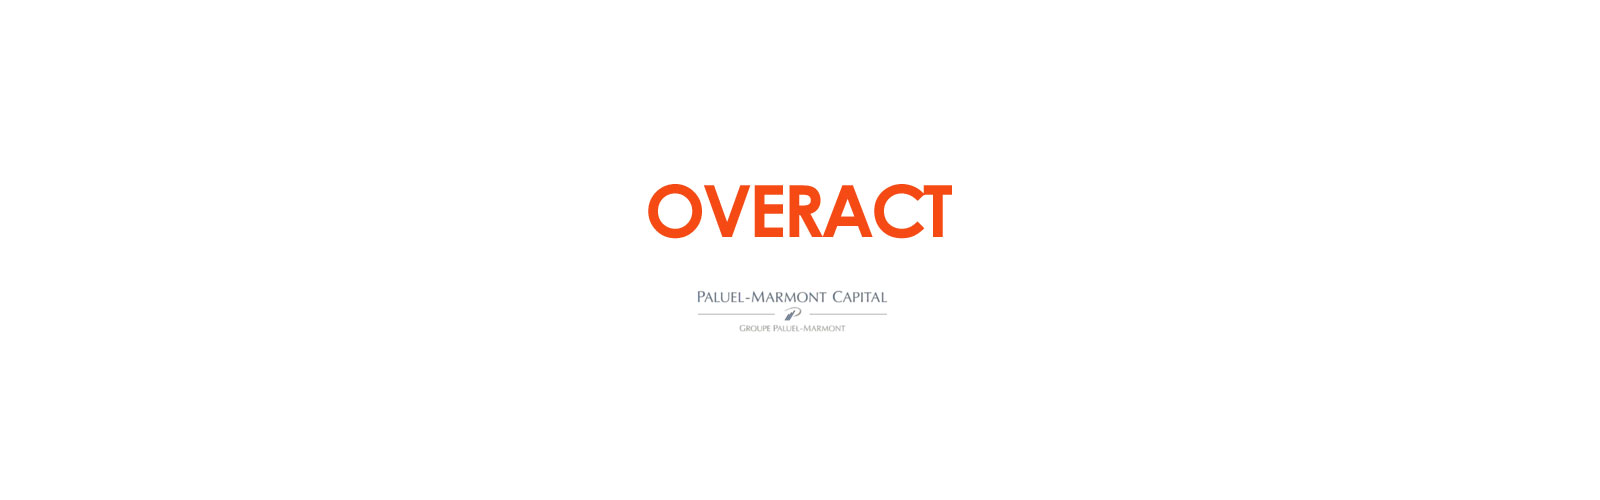 overact-paluel-mormont-capital